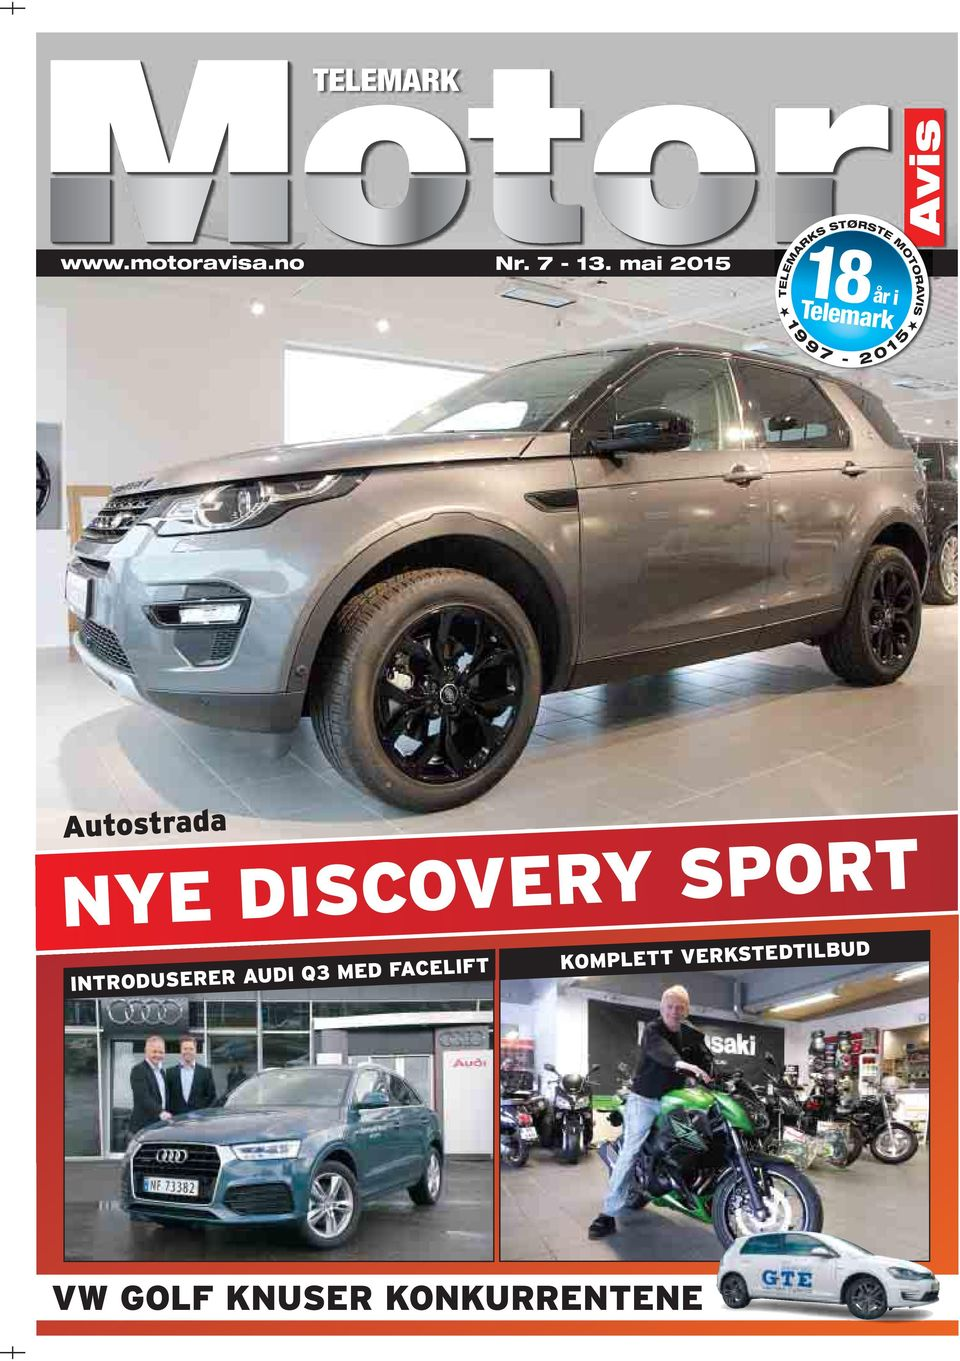 9 7-2 0 1 5 Autostrada NYE DISCOVERY SPORT INTRODUSERER